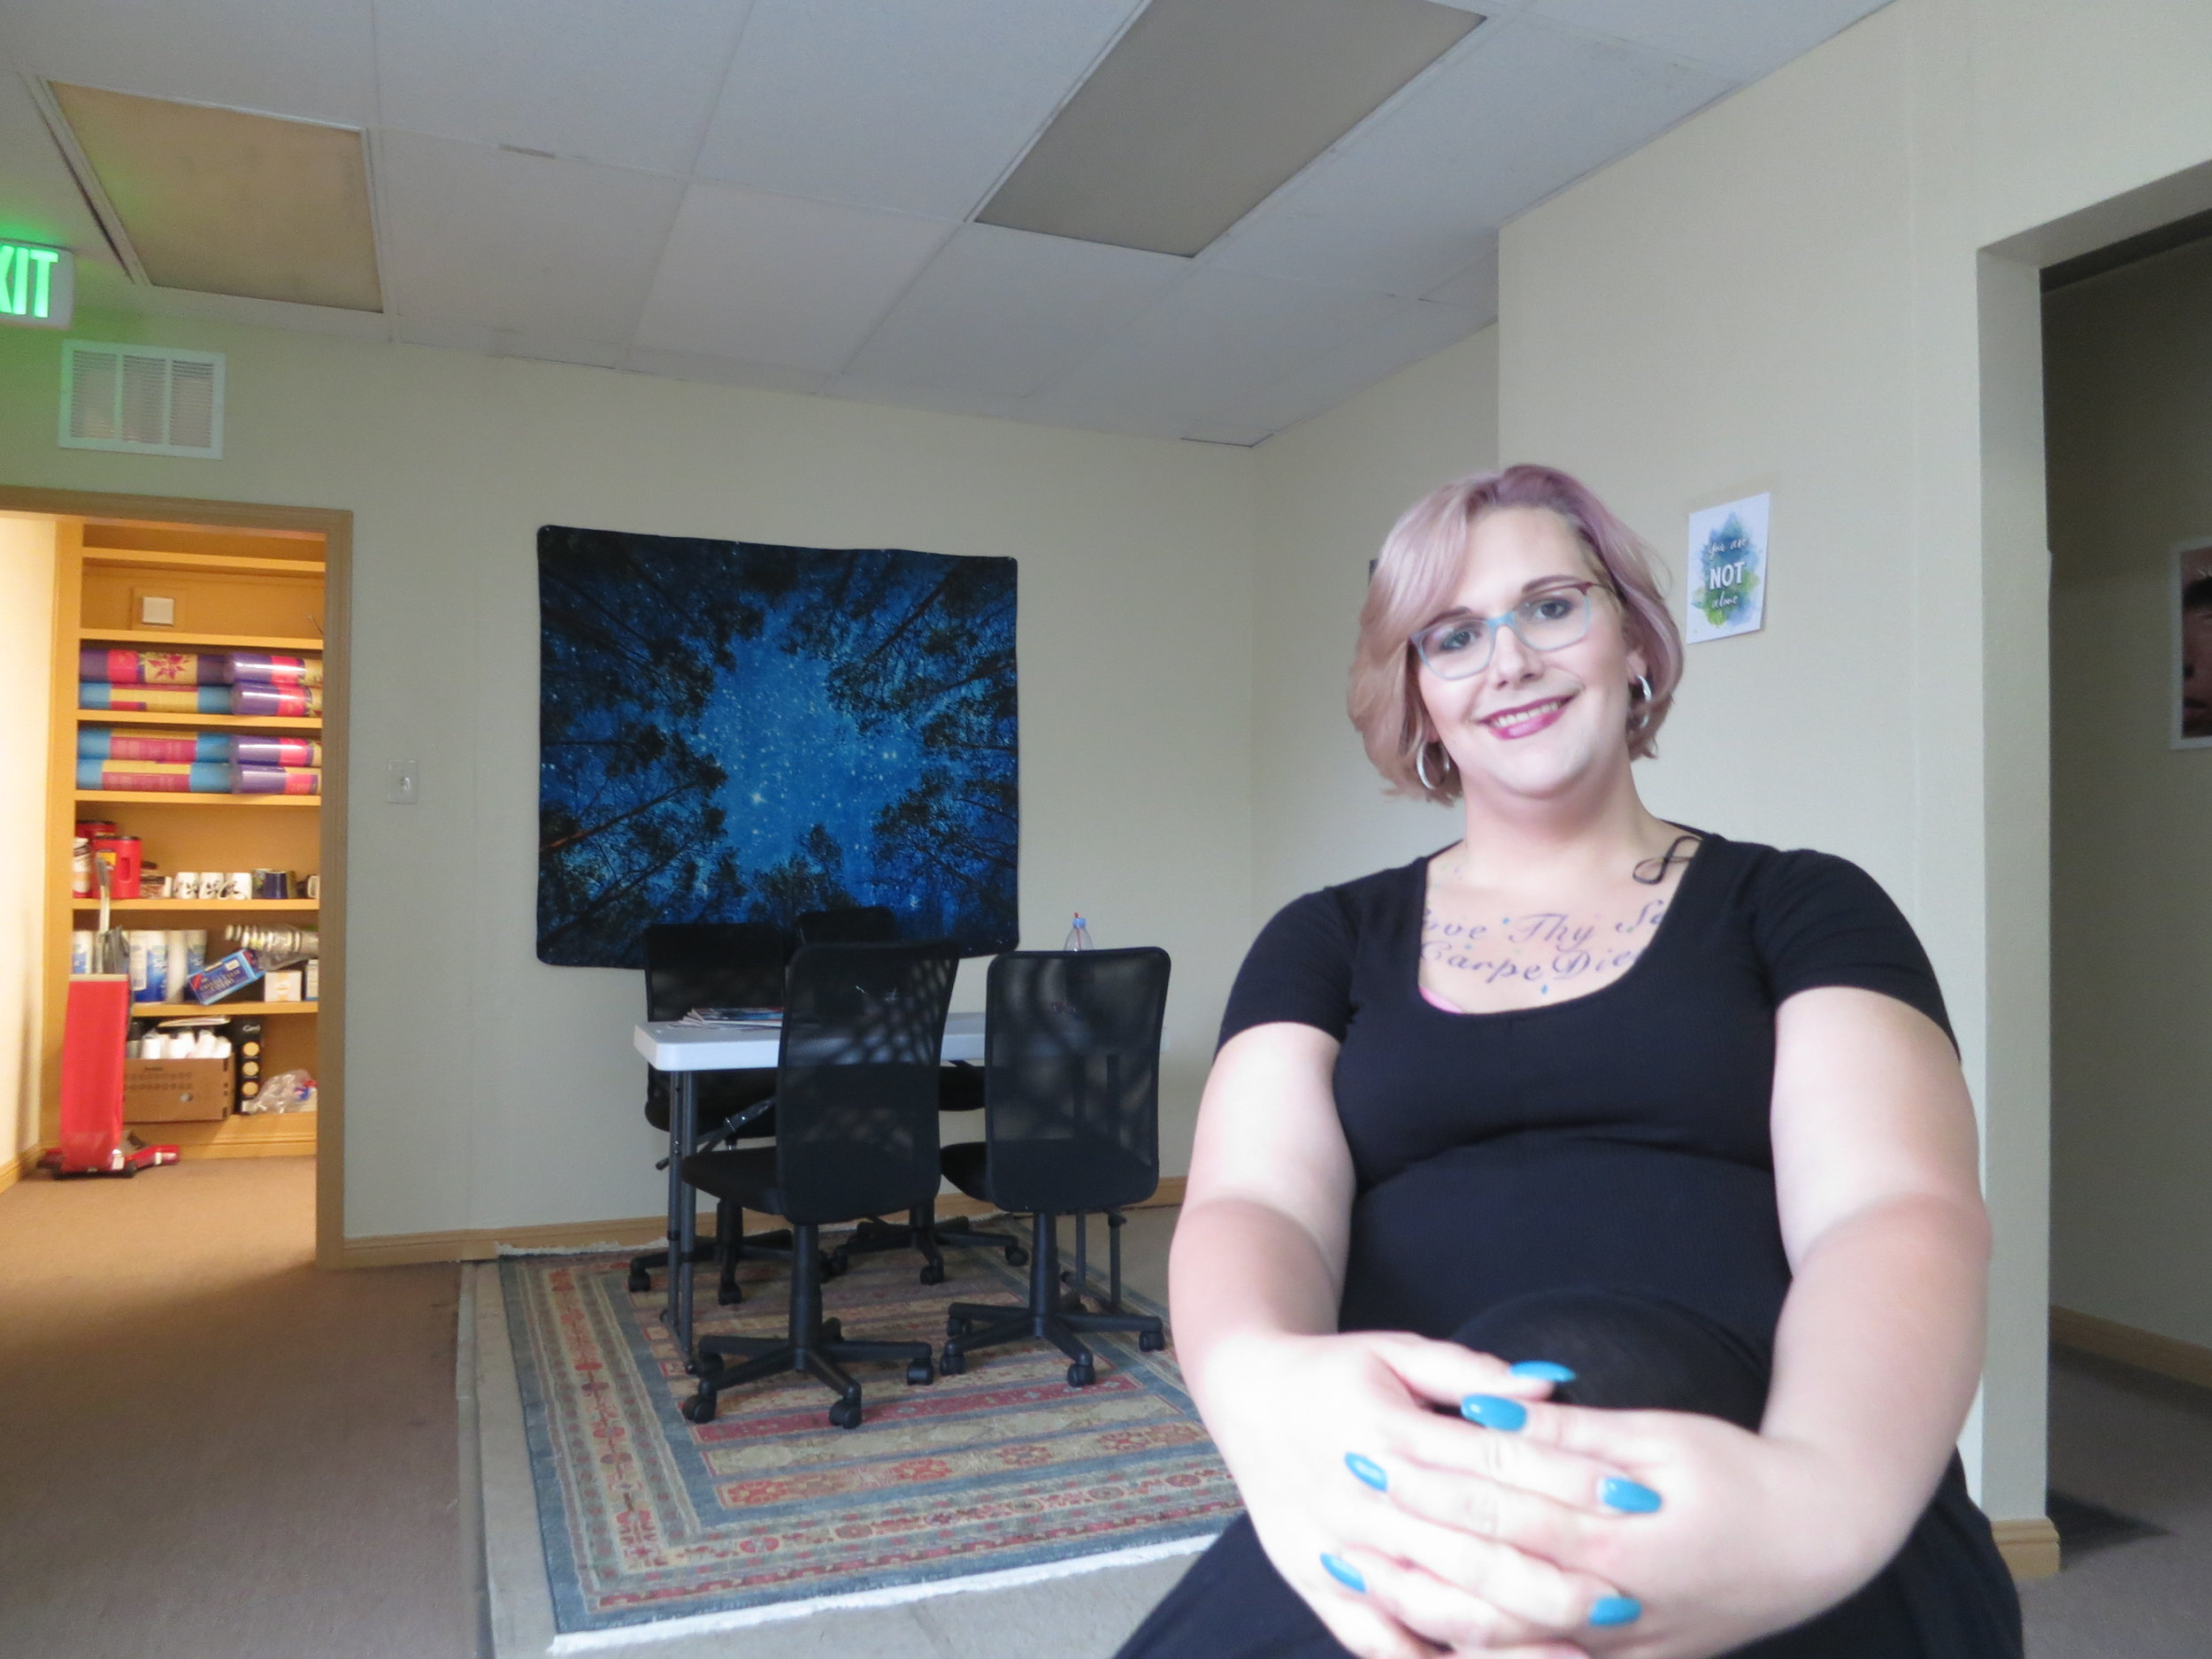 "Phoenix Cutler, who used to be homeless and addicted to crystal meth, leads a trans support meeting in this room at the new Foundation for Recovery in Sparks. ""Basically there's no inclusive group in Reno that talks about sex, drugs, you know … how to have sex on hormones, how not to have sex on hormones, body positivity and just living your true life,"" she said during an interview with Our Town Reno."